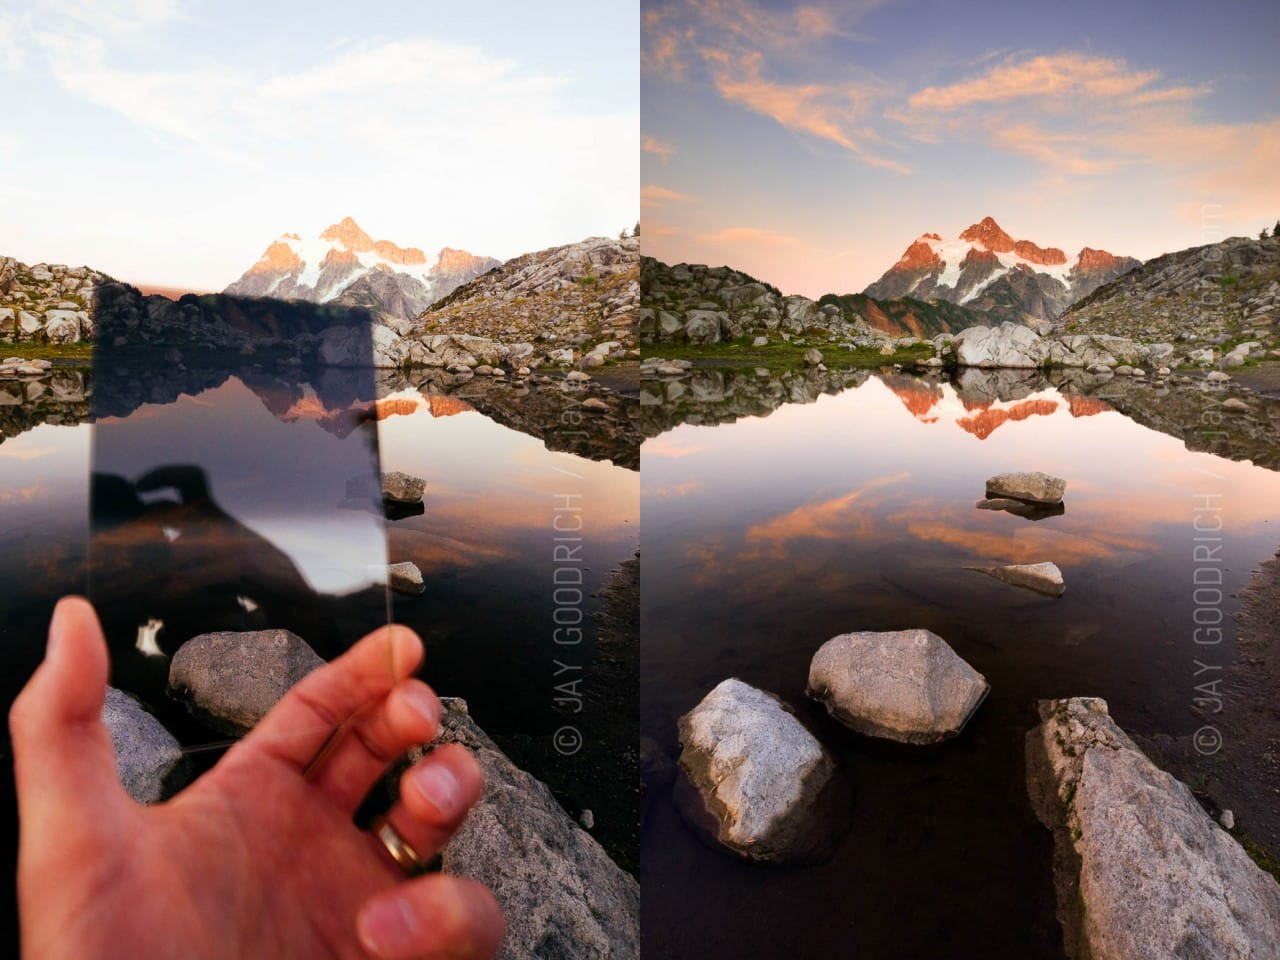 photographic filters - graduated neutral density usage by jay goodrich